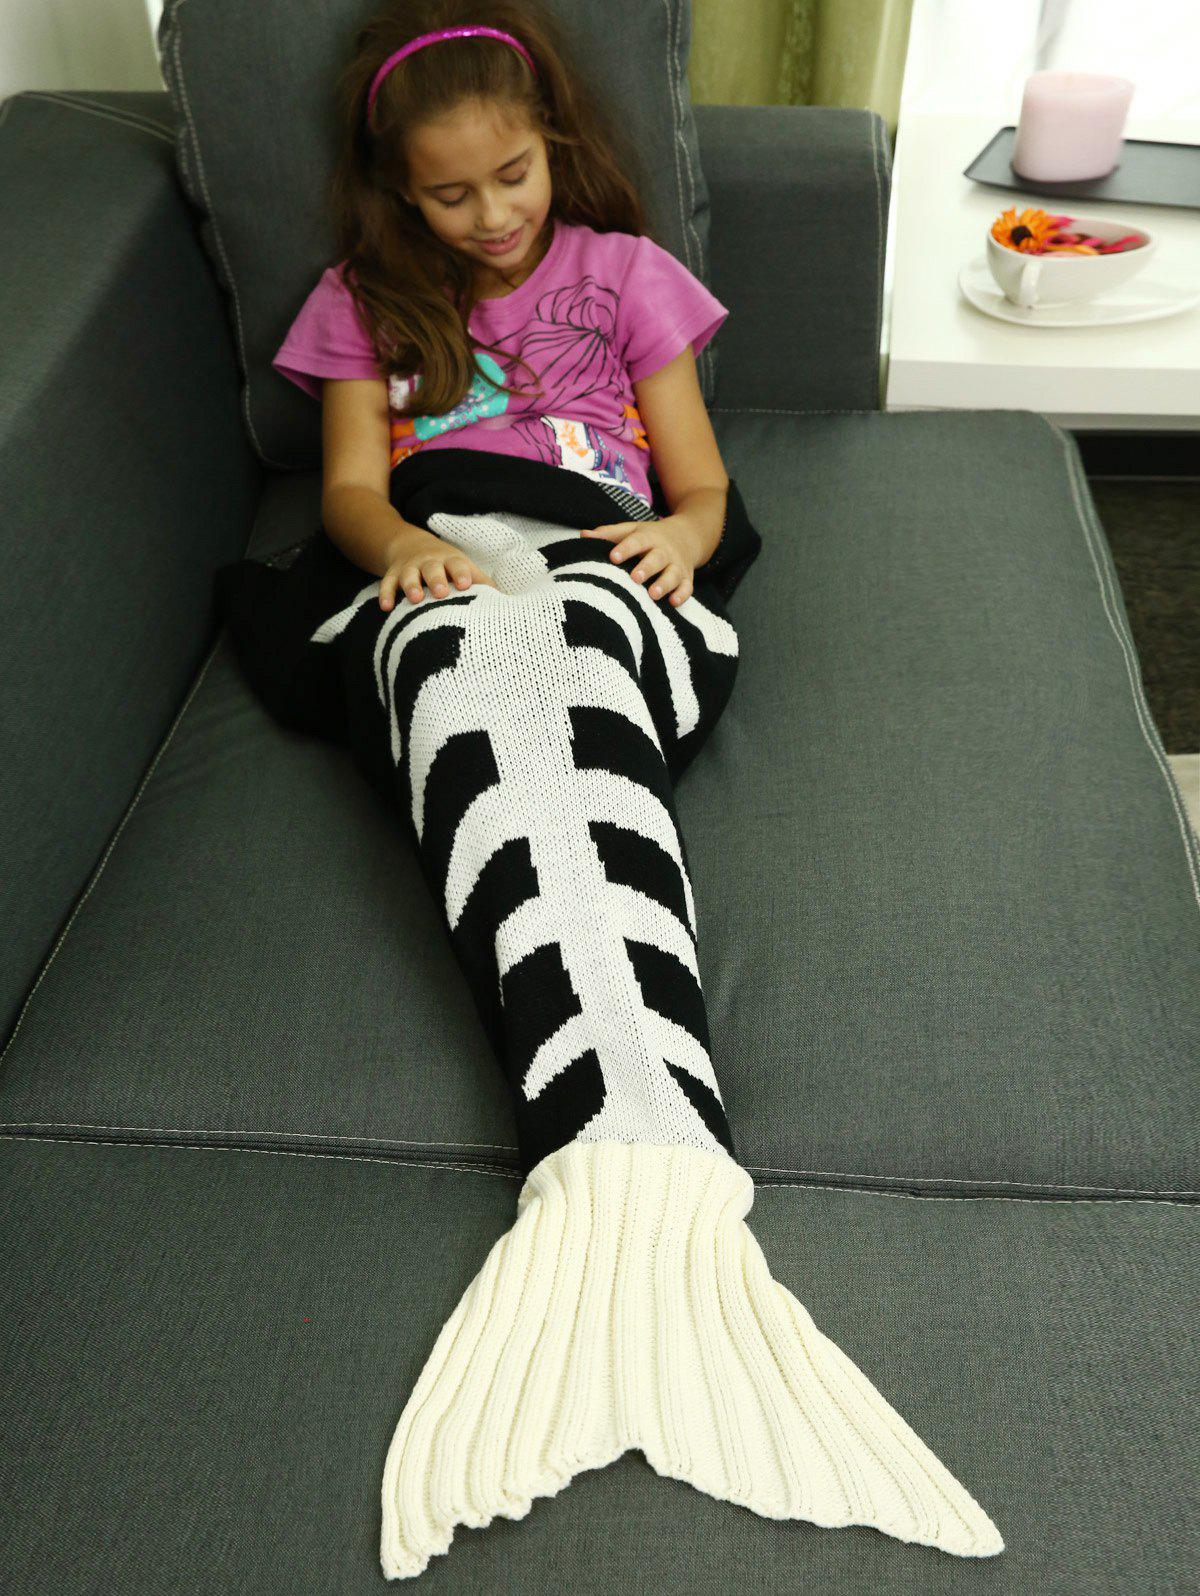 ComfortableFishbone Kintted Mermaid Tail Blanket For Kids - WHITE/BLACK L